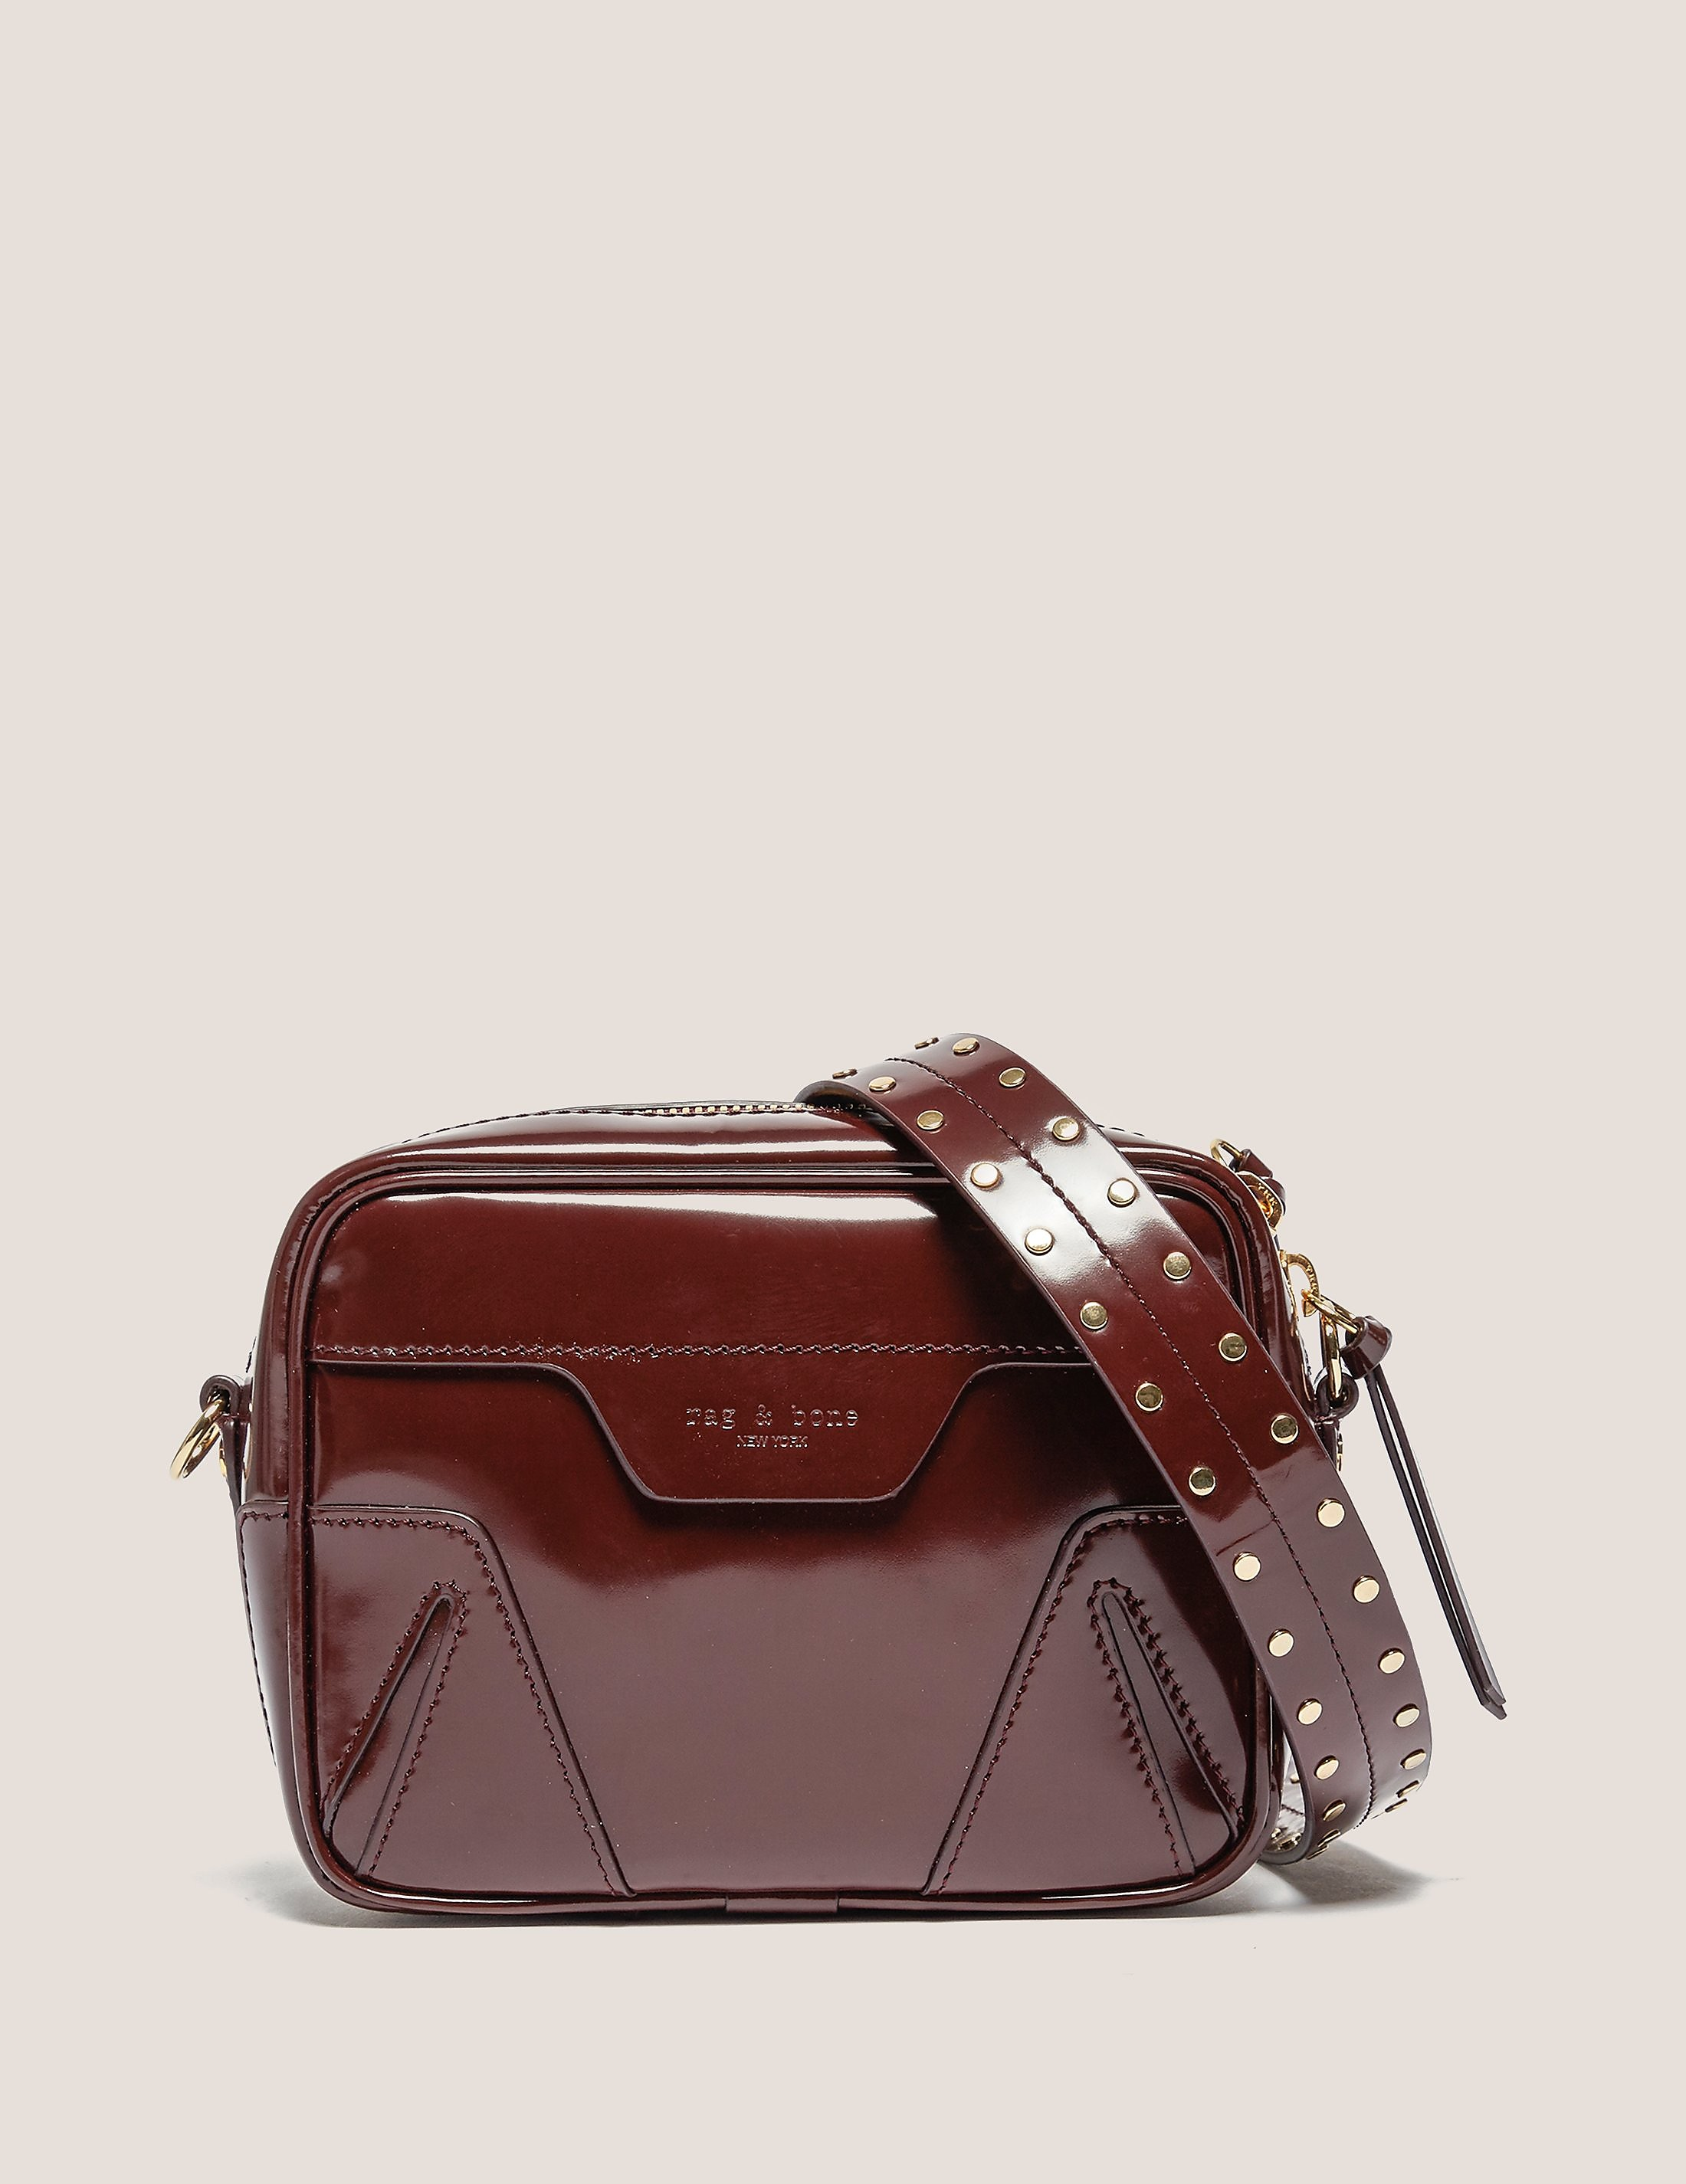 RAG AND BONE Mini Flight Camera Bag